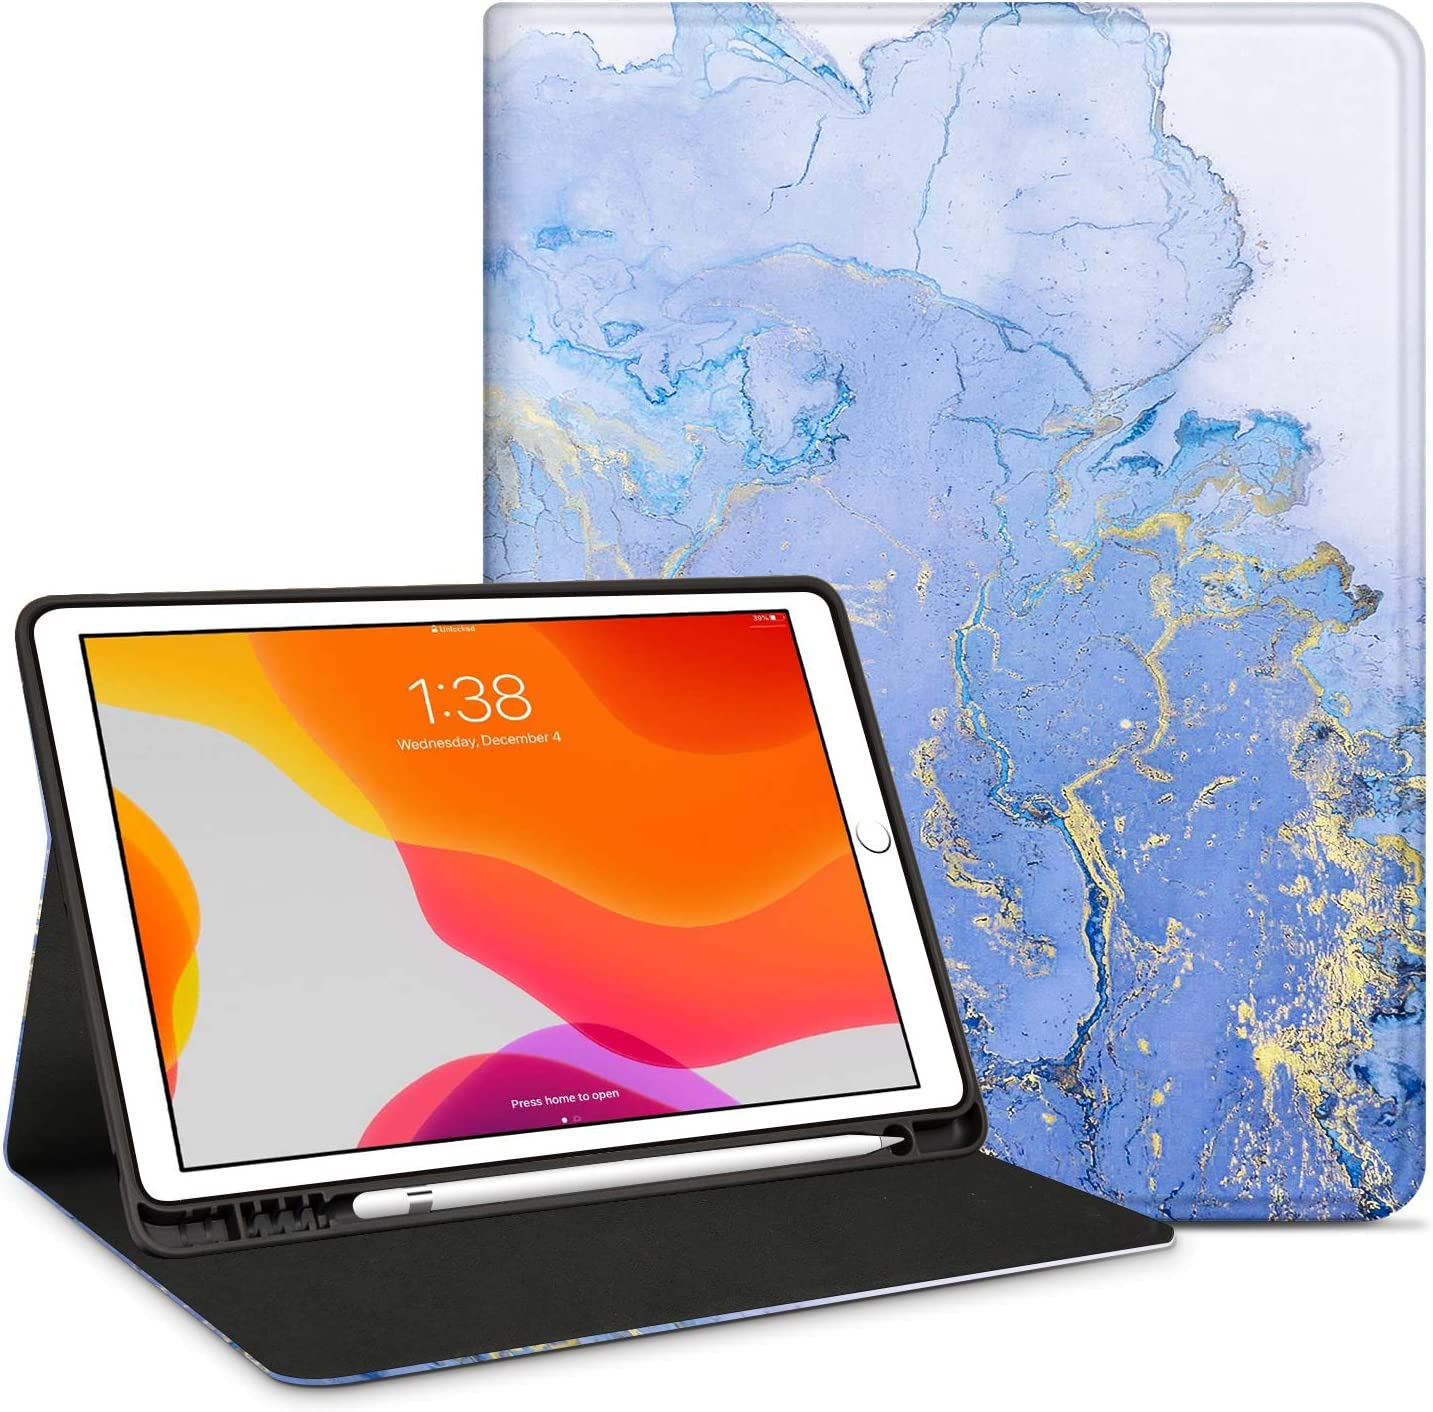 """INSSISAIN Smart Case for New iPad 7th Generation 10.2"""" 2019 with Pencil Holder, PU Leather Protective Smart Cover with Auto Sleep/Wake for New Apple iPad 7th Generation 10.2 2019 Release, Marble-2"""